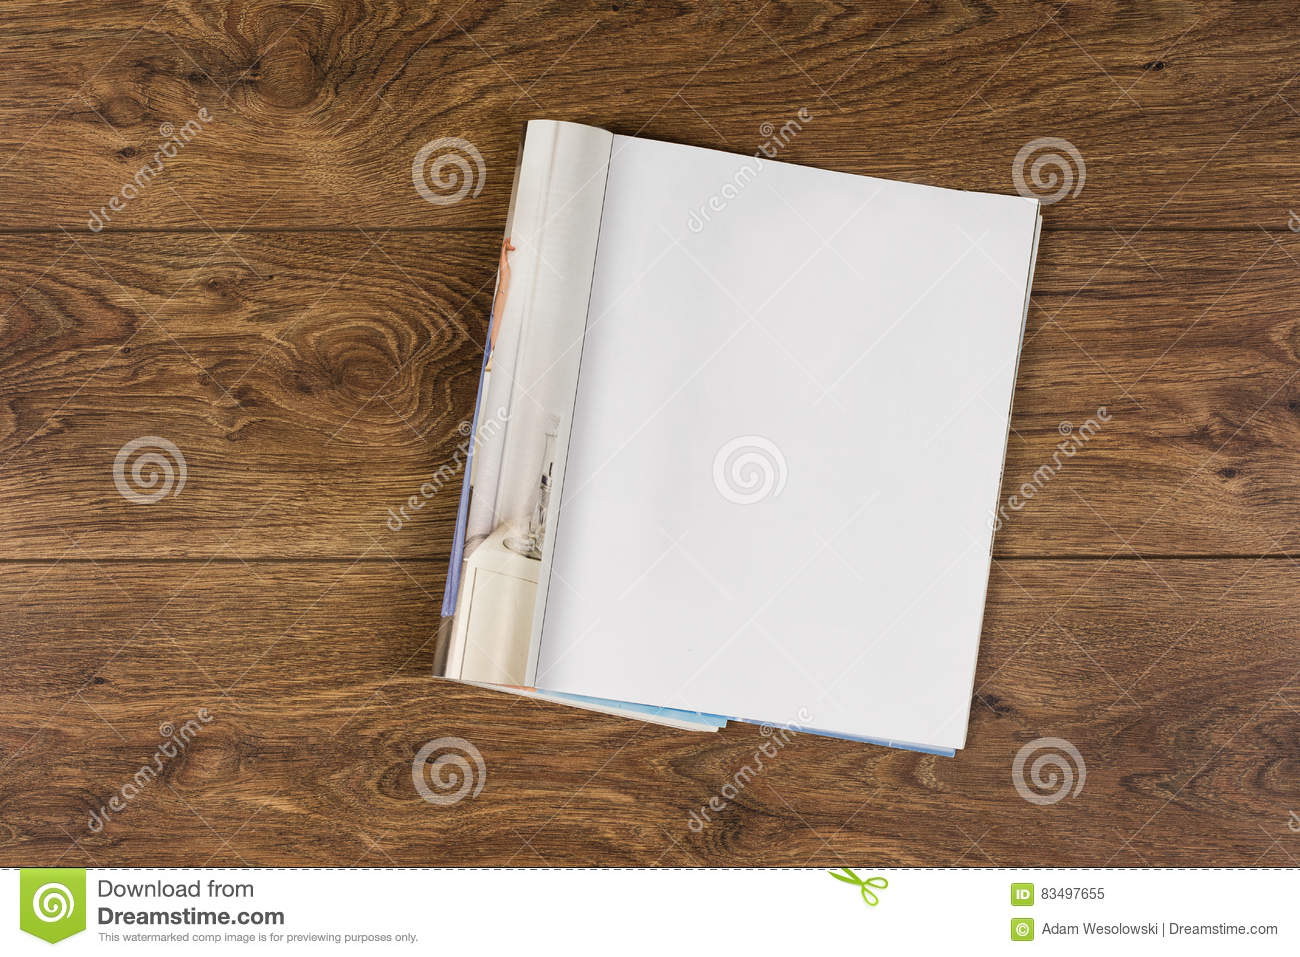 Mock-up magazines or catalog on wooden table background.